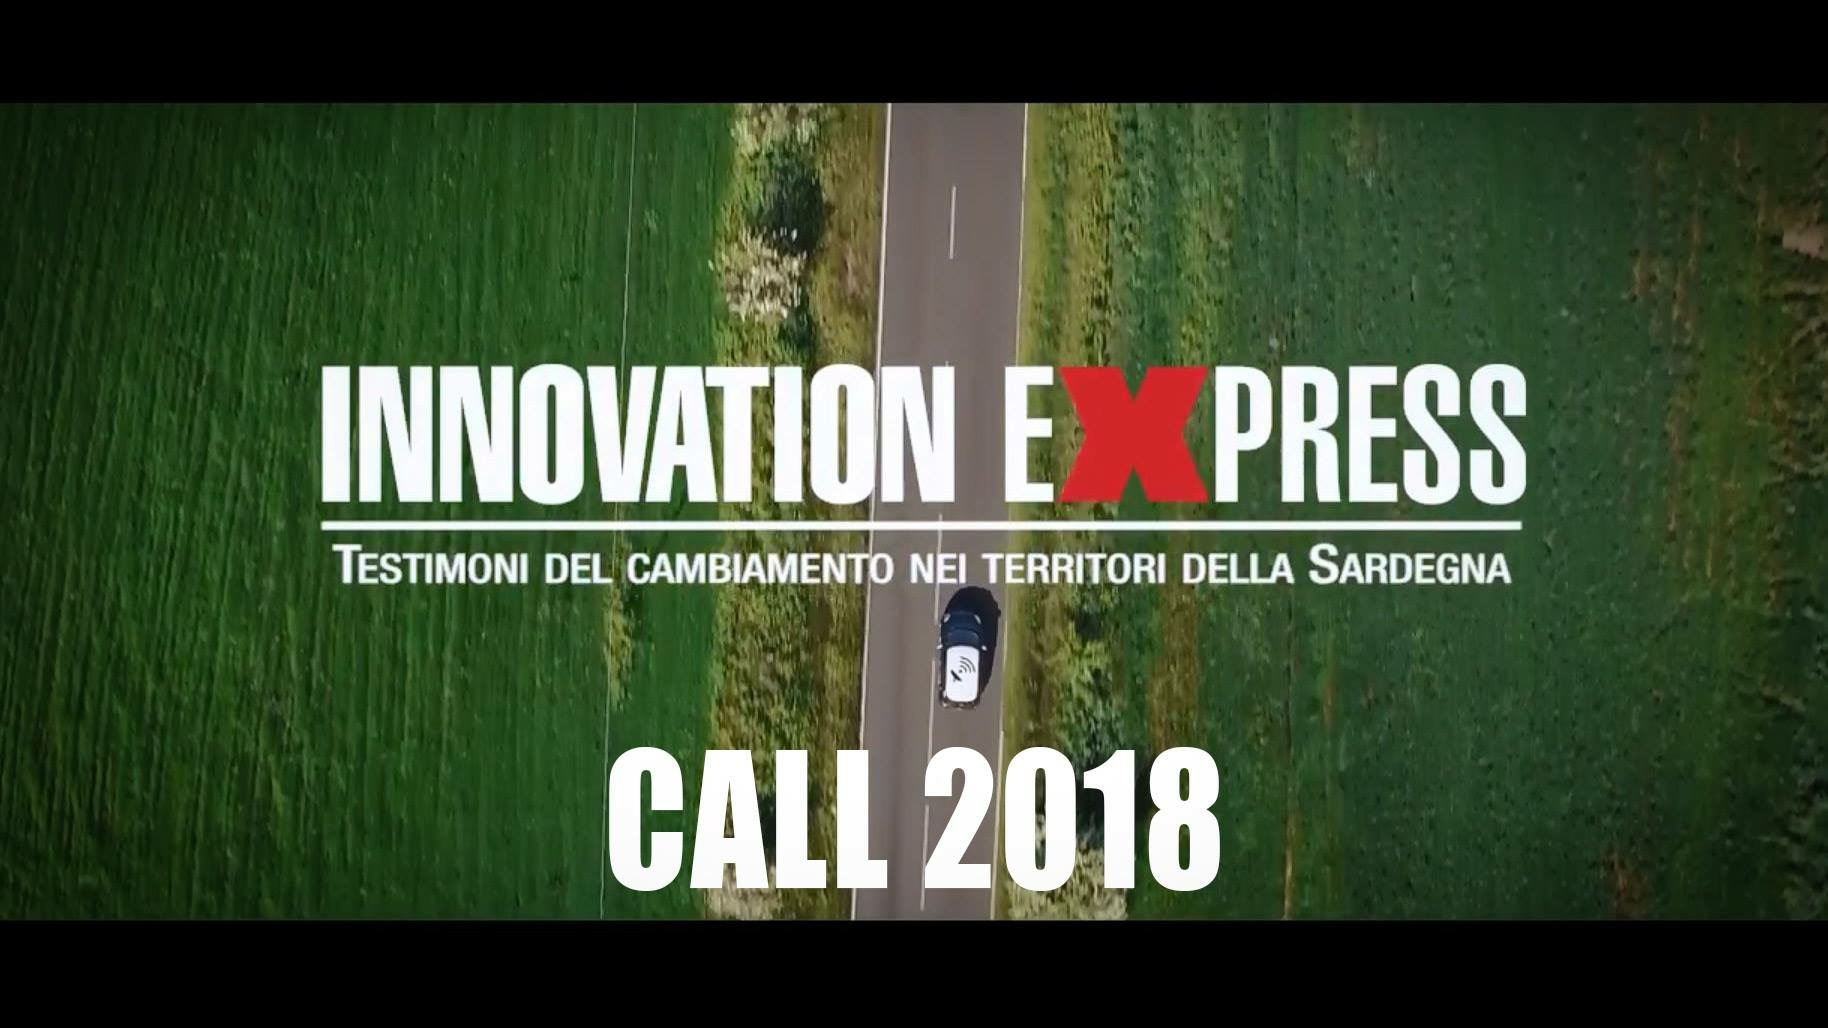 INNOVATION EXPRESS